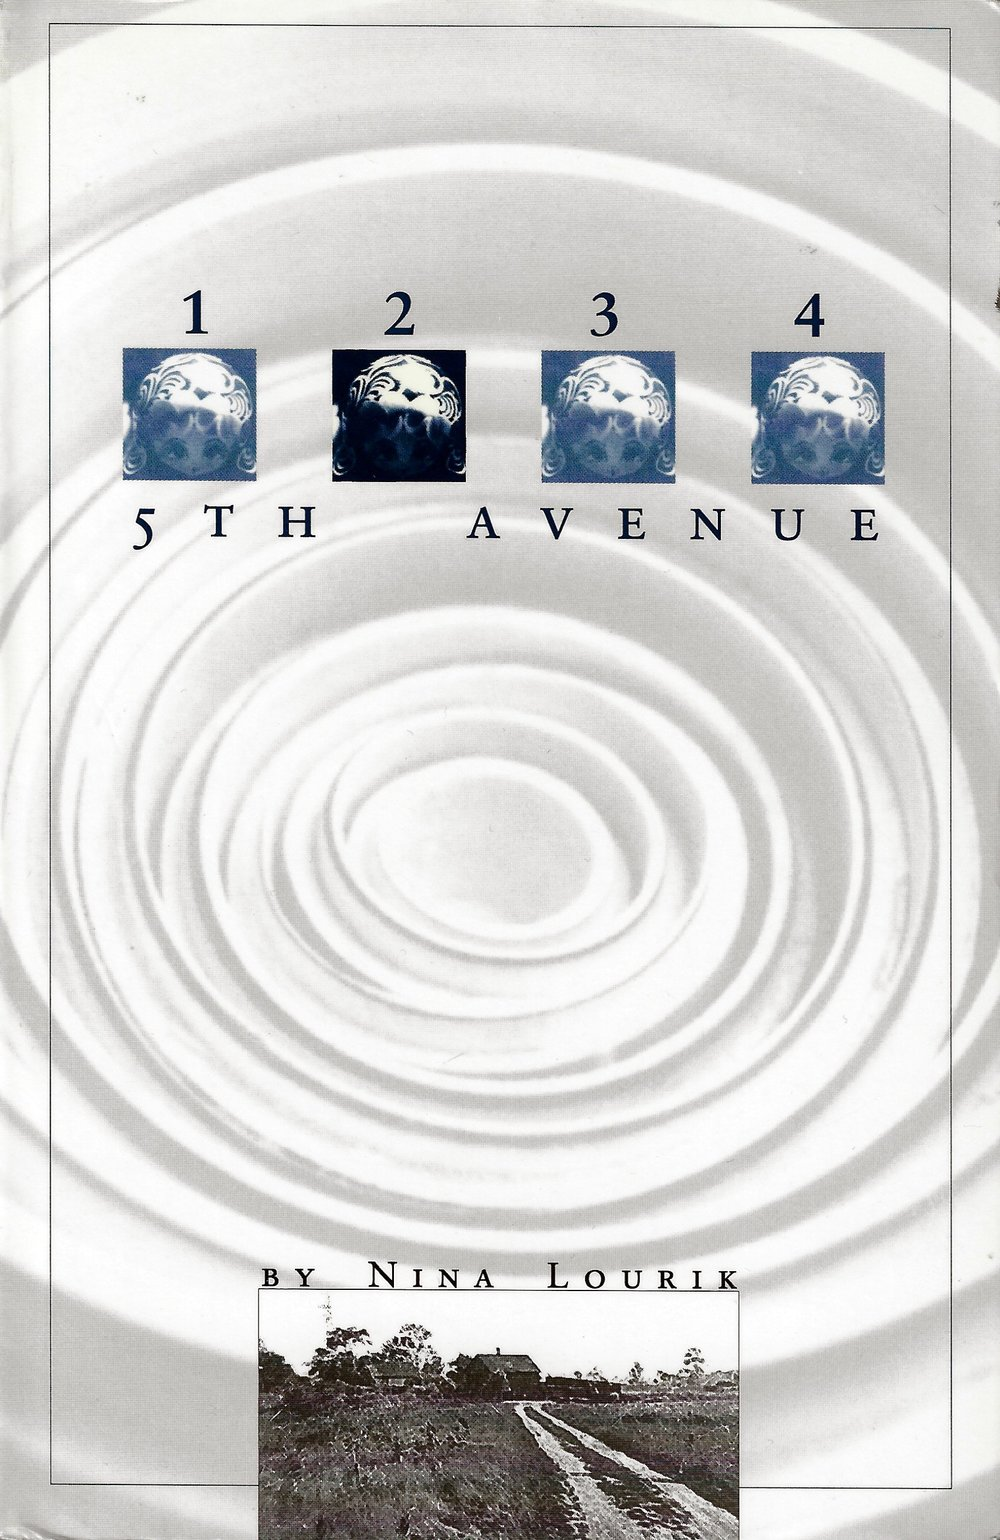 """1234 5th Avenue By Nina Lourik (1999)   It's fiction, but the story tracks closely to the life of author Nina Lourik, who grew up in the Depression years in the Roby section of Hammond, a part of town better known these days as the """"area around Wal-mart."""" She writes about a Russian immigrant family living in poverty in an area surrounded by slag heaps, dumps, and a corn processing plant next to a lake. In her 2012 obituary, the book is described as """"a touching coming of age story that explores themes of determination, resilience, strength, hardship, loss, and laughter."""